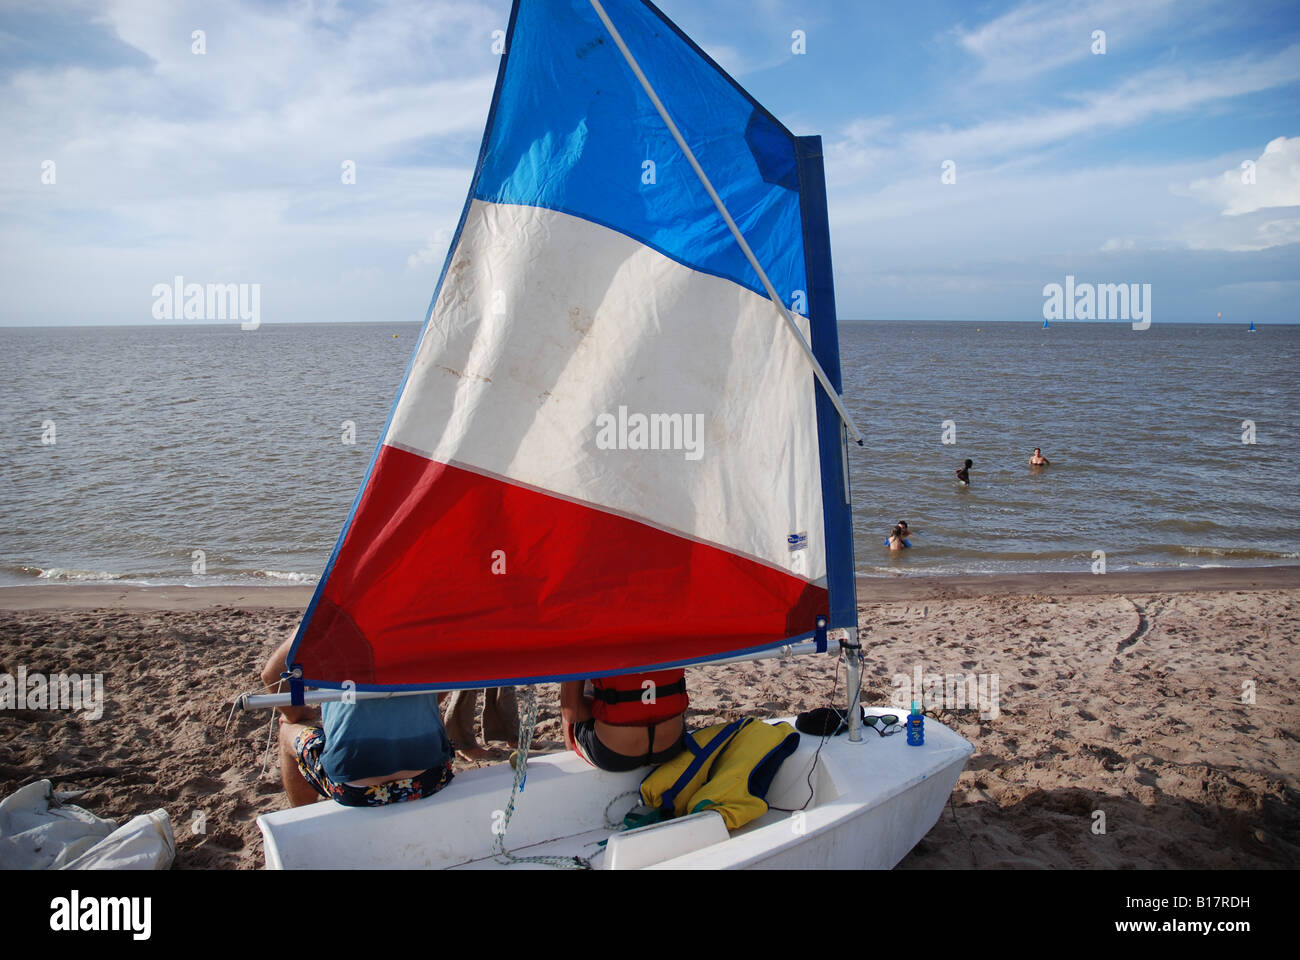 french flag sail on a sailing boat on the beach - Stock Image